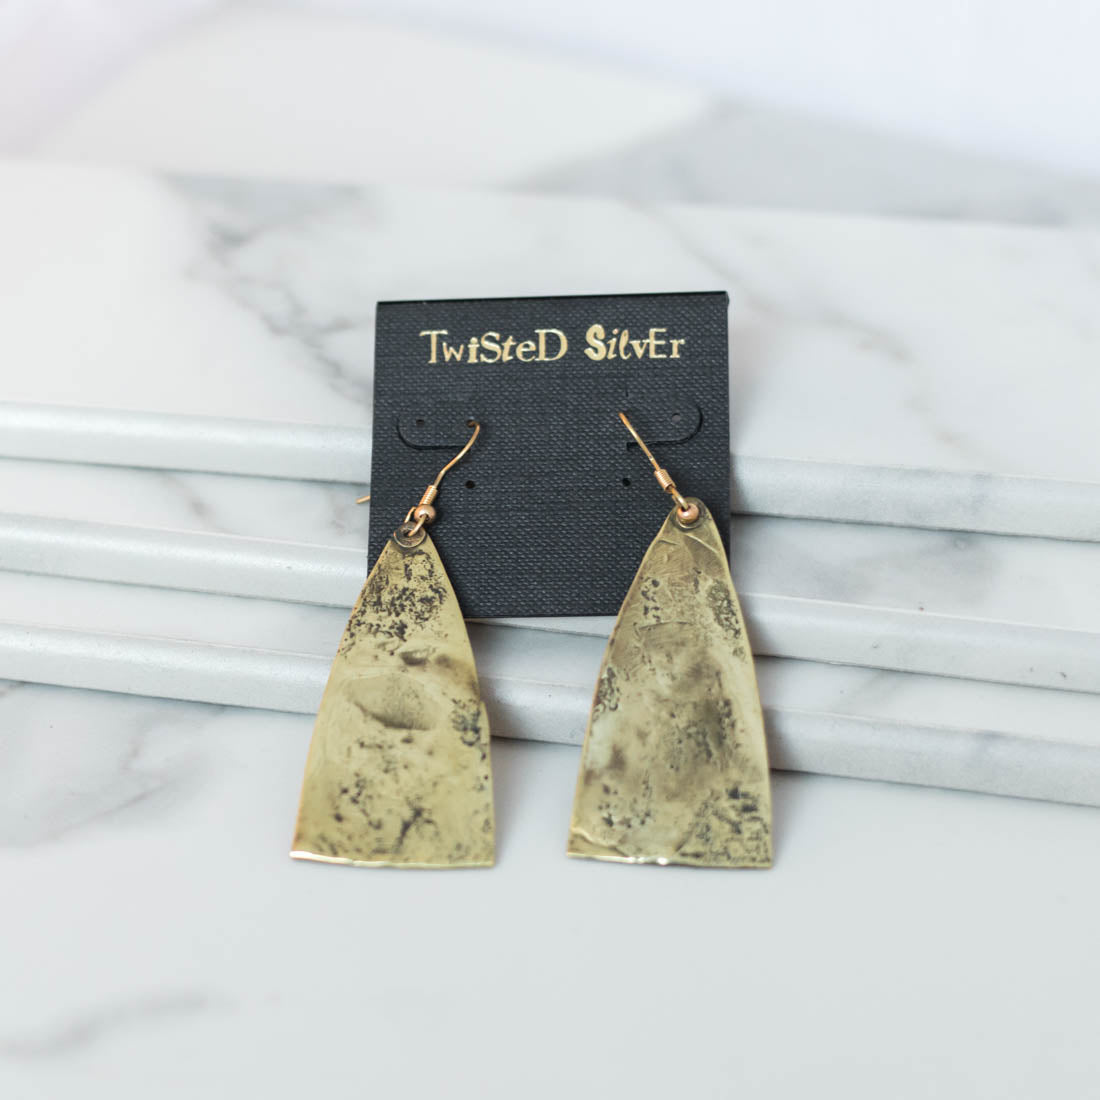 PYRAMID Earrings - Twisted Silver Jewelry